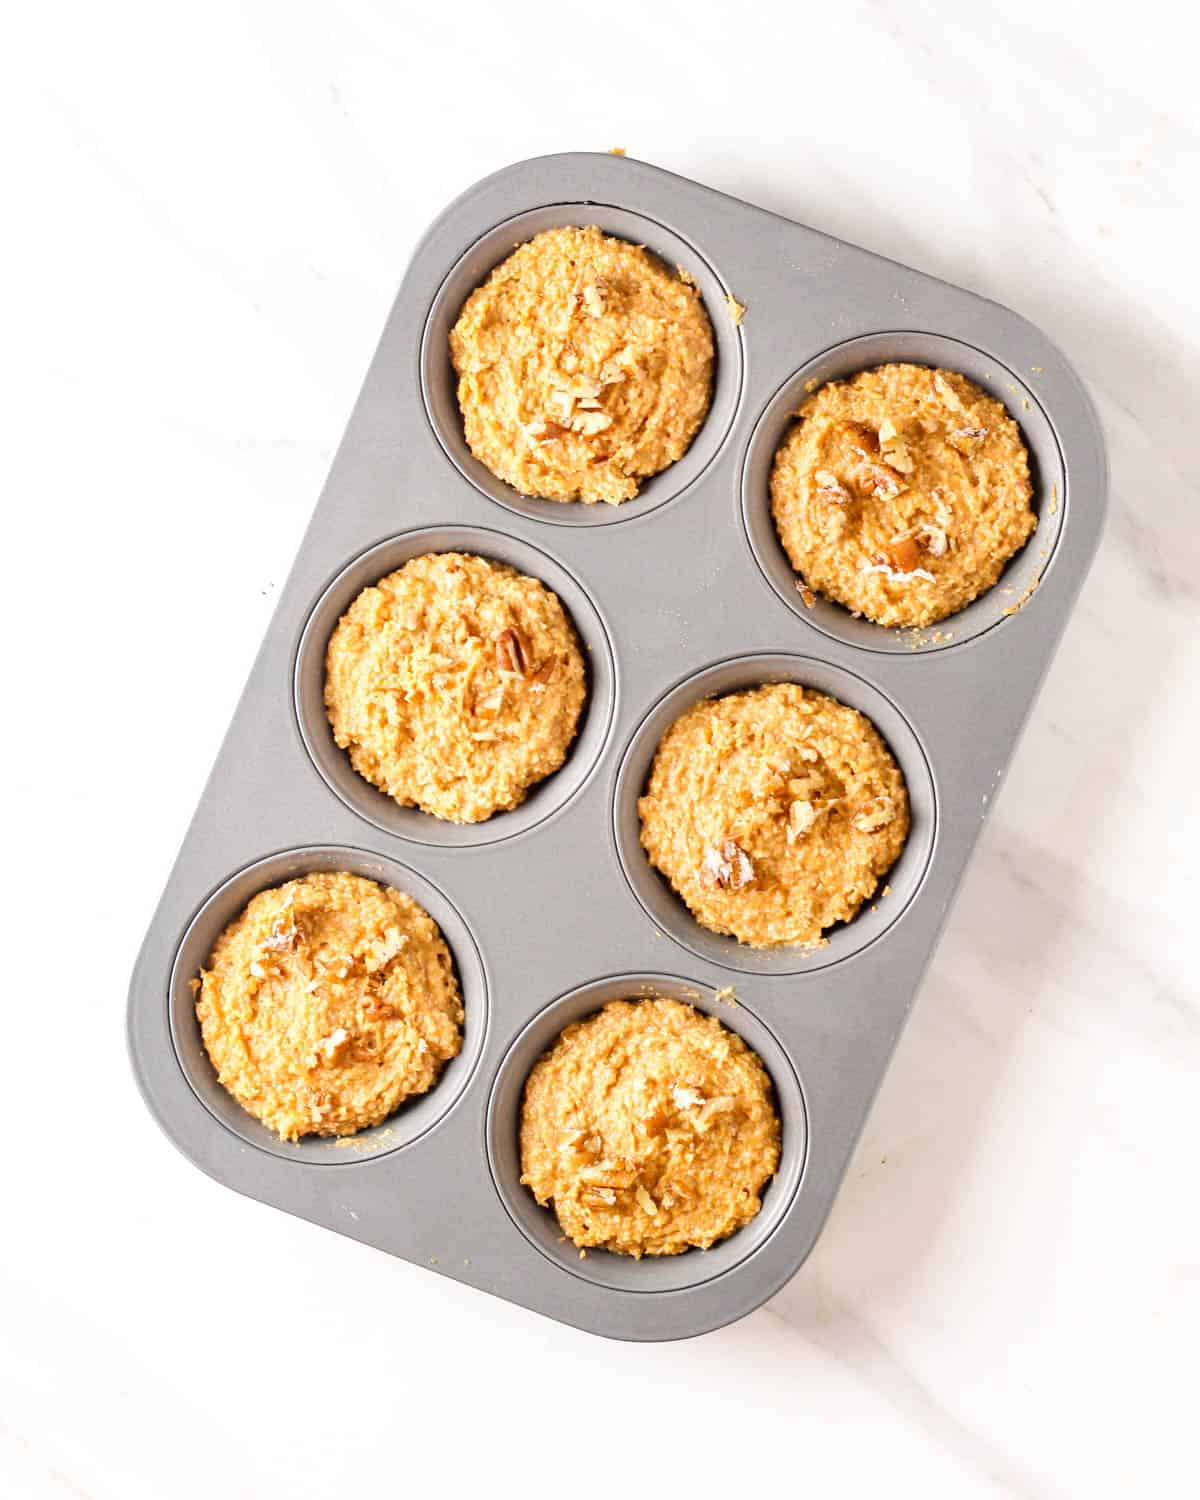 Muffin batter in a muffin pan.